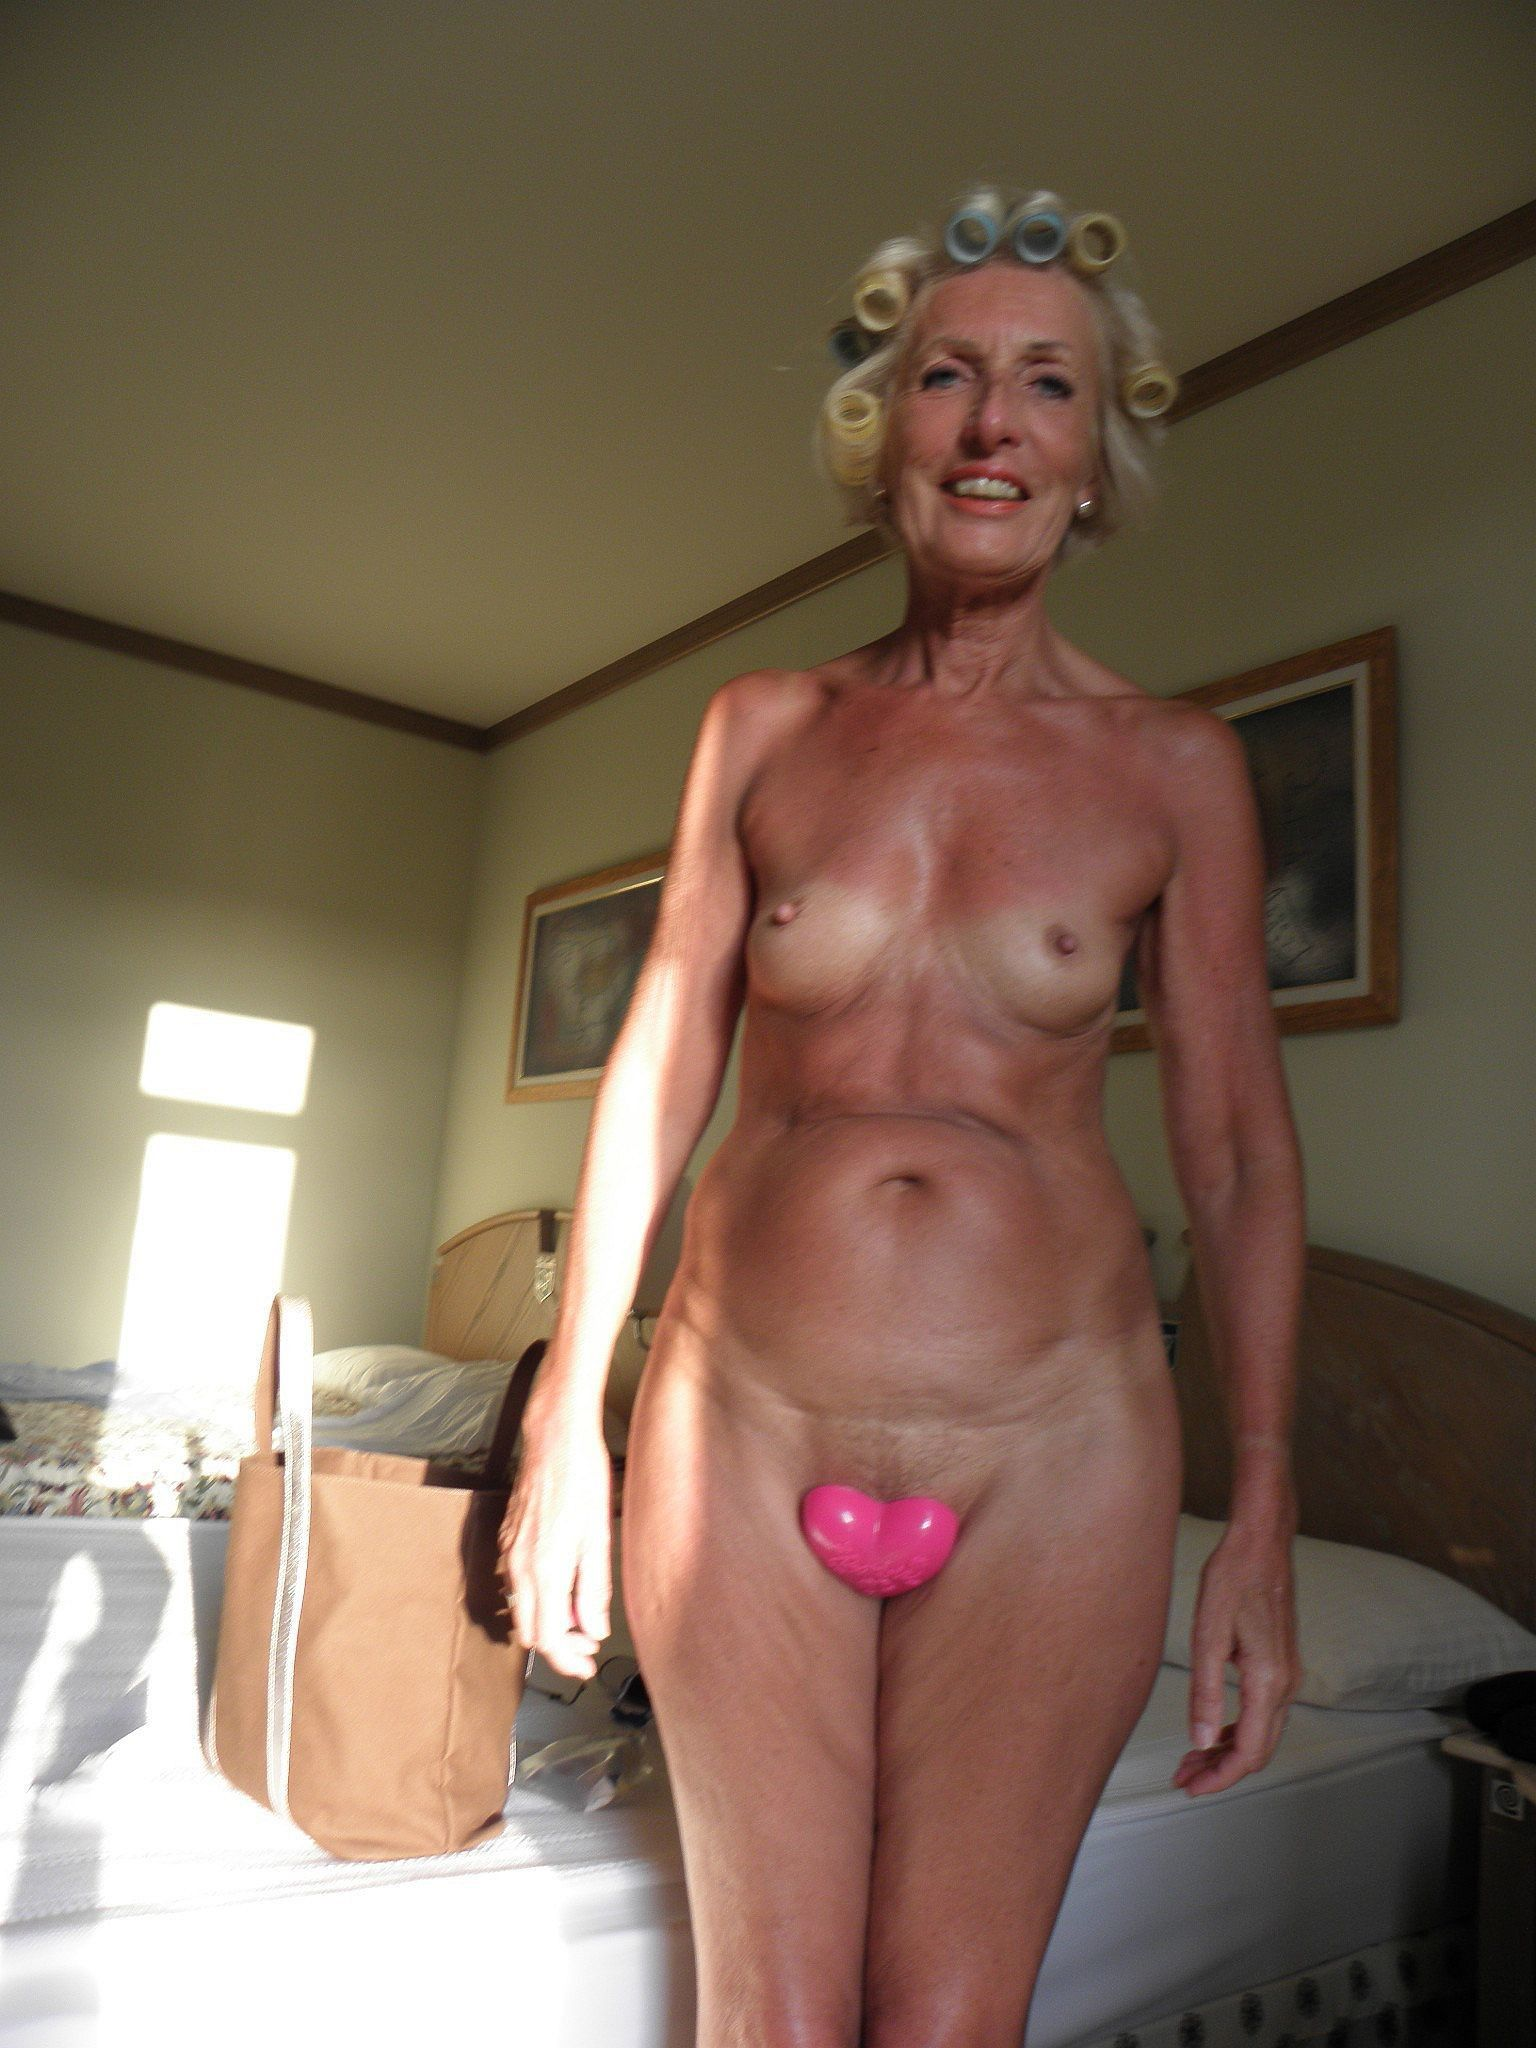 granny pics sex - old granny sexy pictures | pretty woman